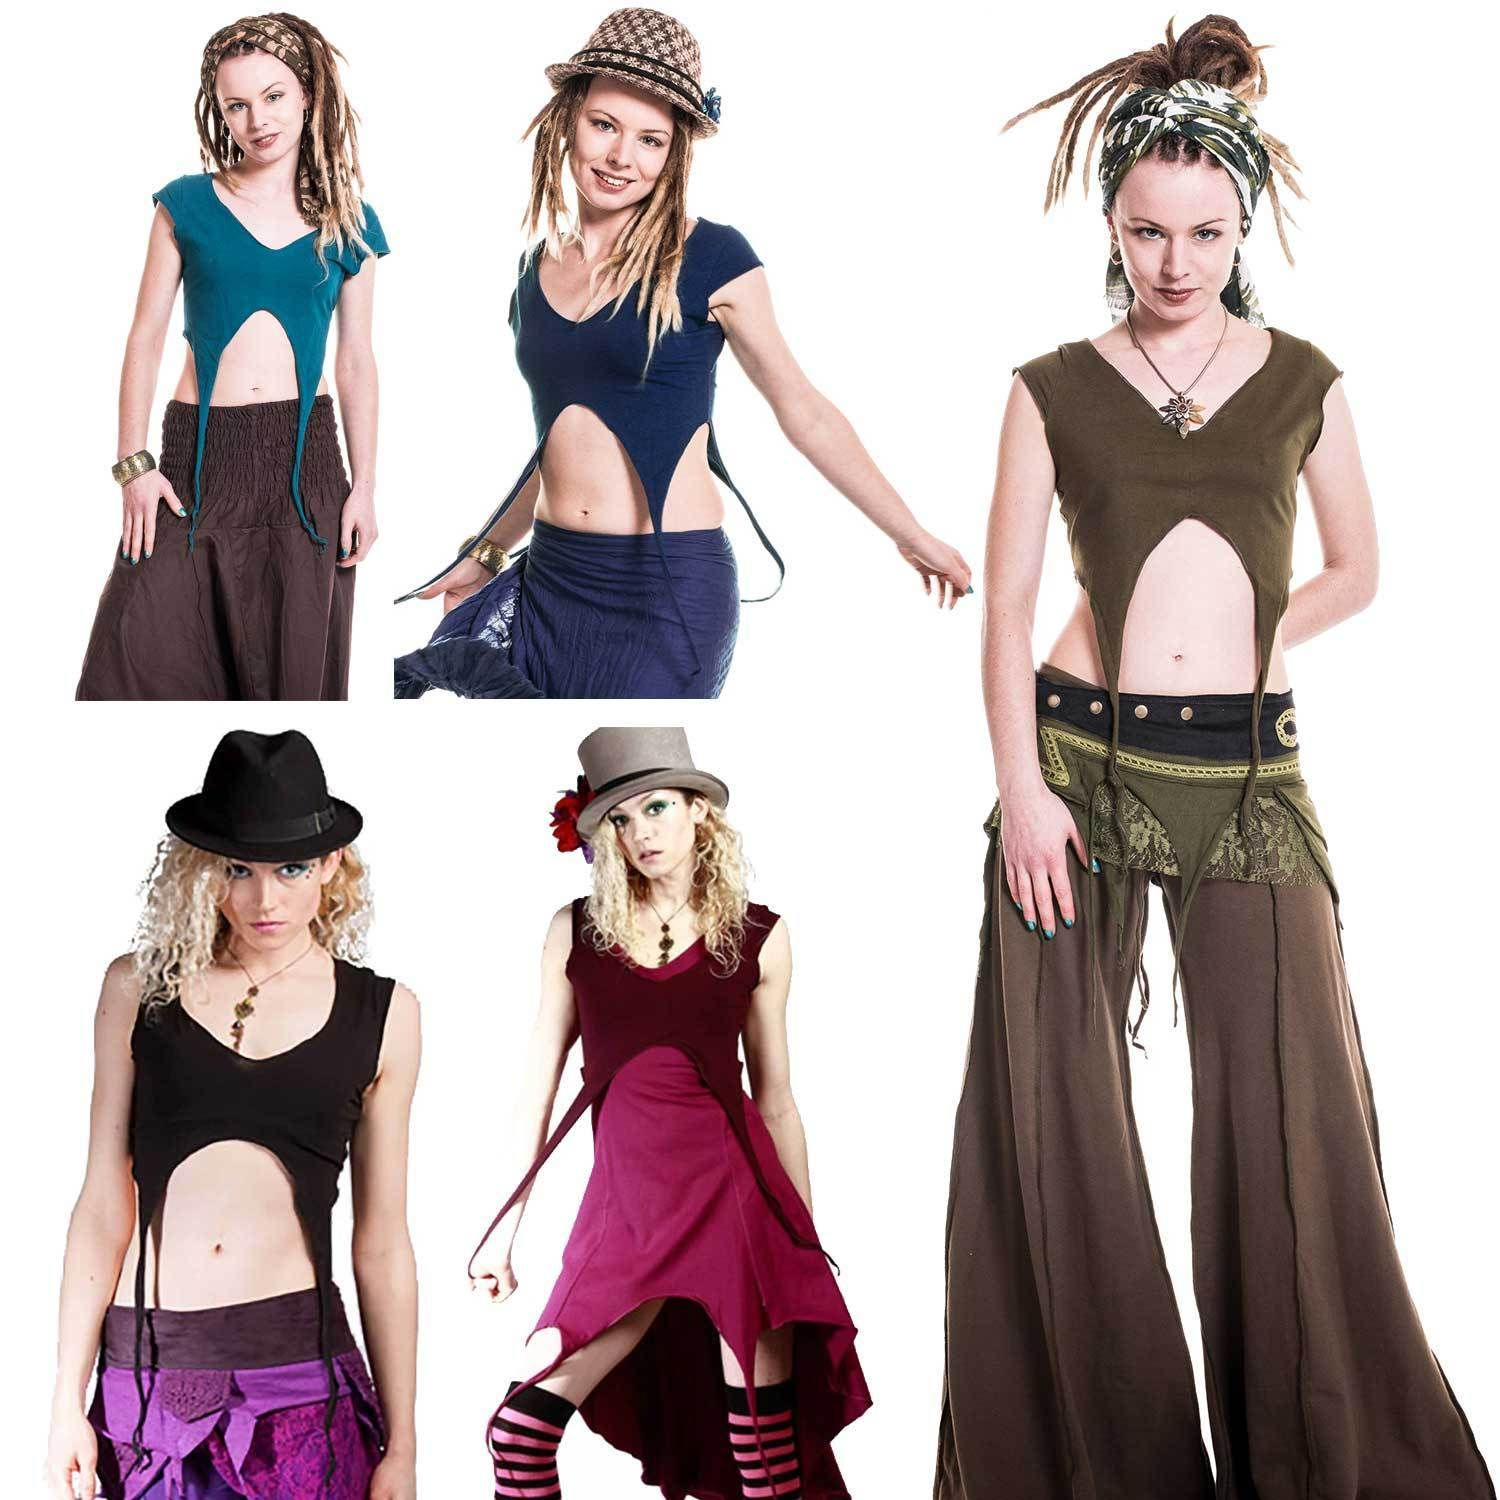 elf top GEKKO TOP WOMENS PIXIE CLOTHING PIXIE JACKET FAIRY TOP PIXIE TOP